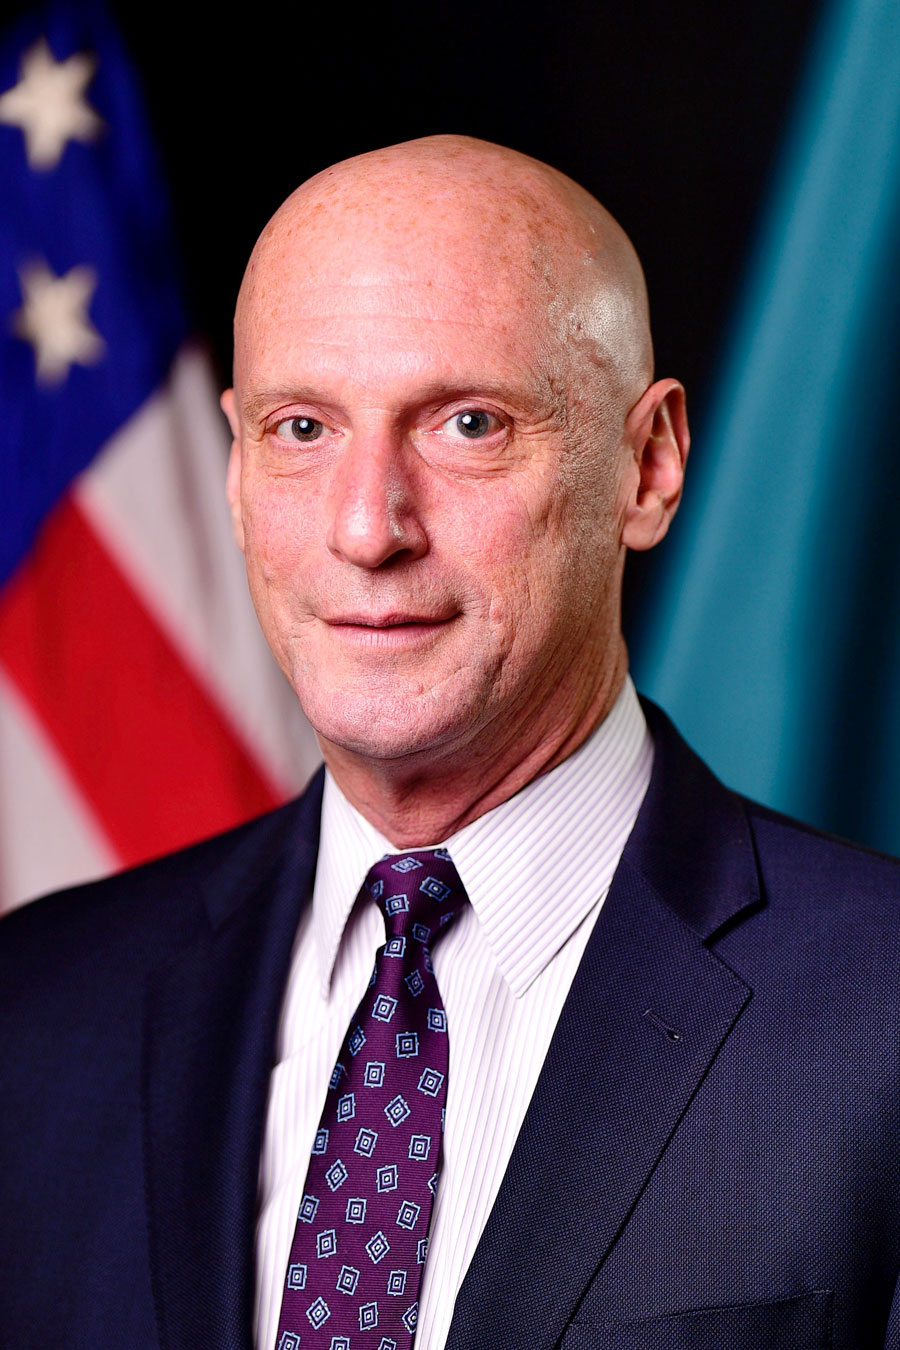 Photo of Secretary of State Jeffrey W. Bullock